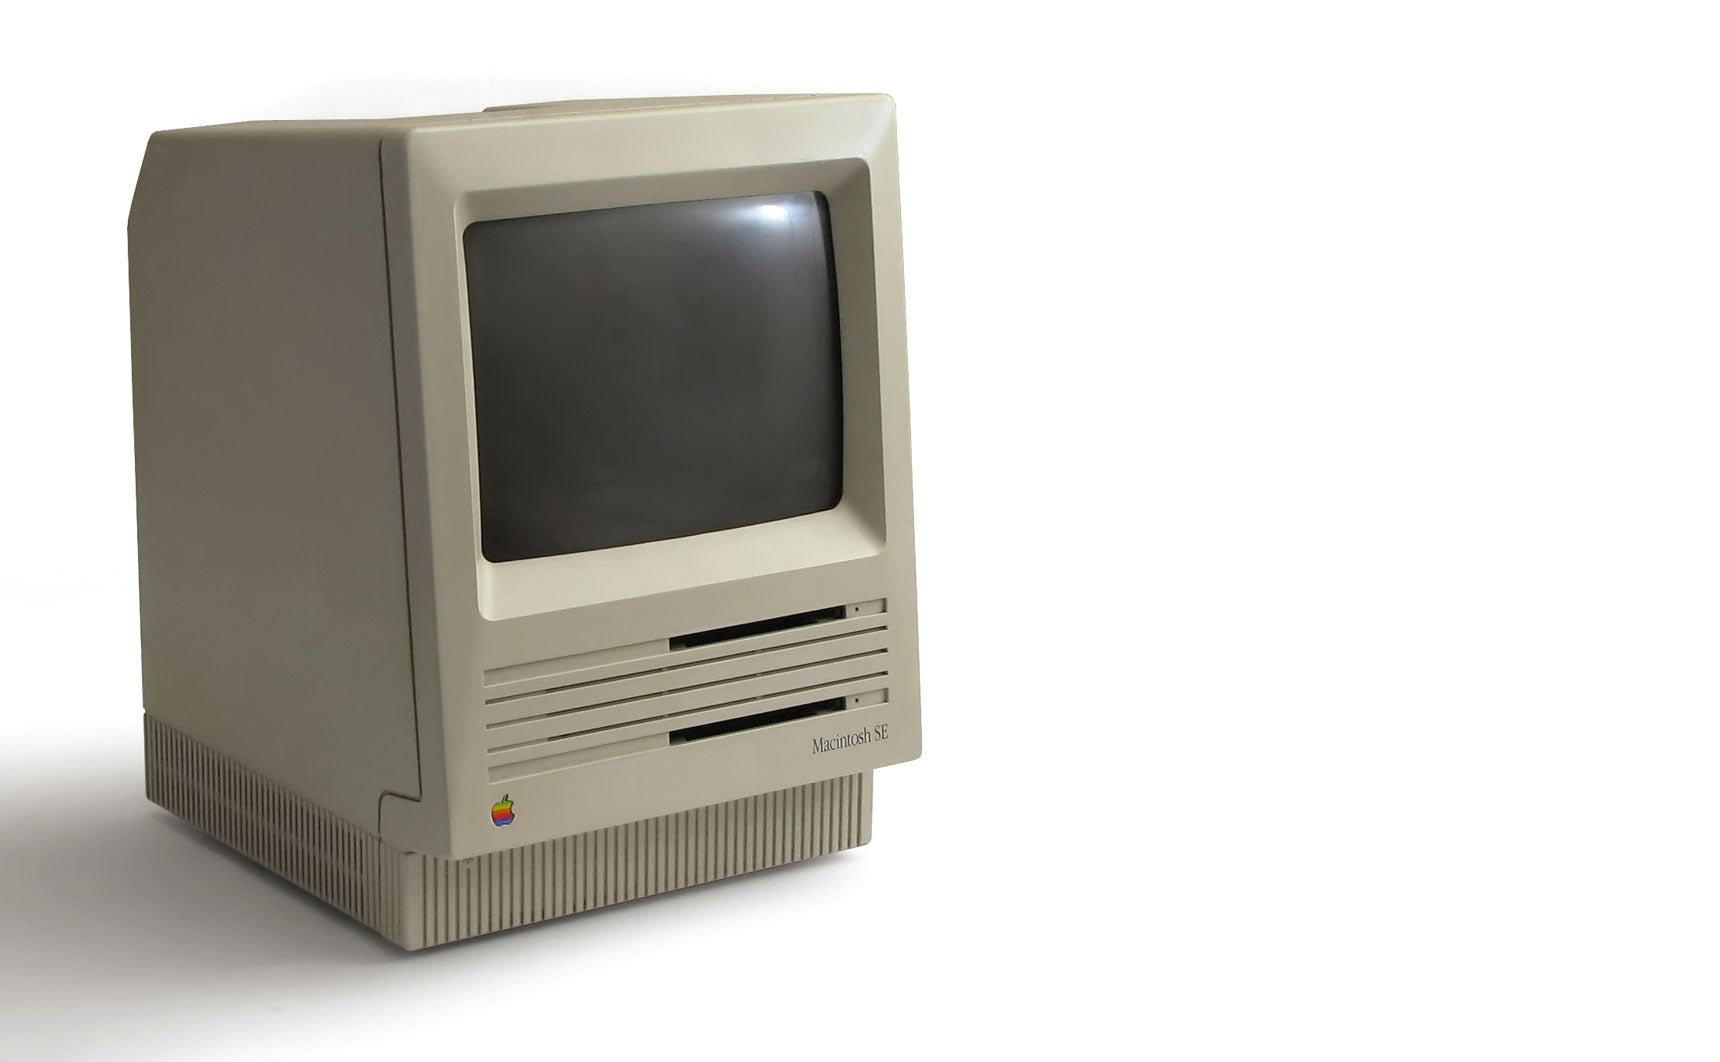 Redditor Gets Old Macintosh From Craigslist, Finds Weird 80s Porn Software (NSFW)